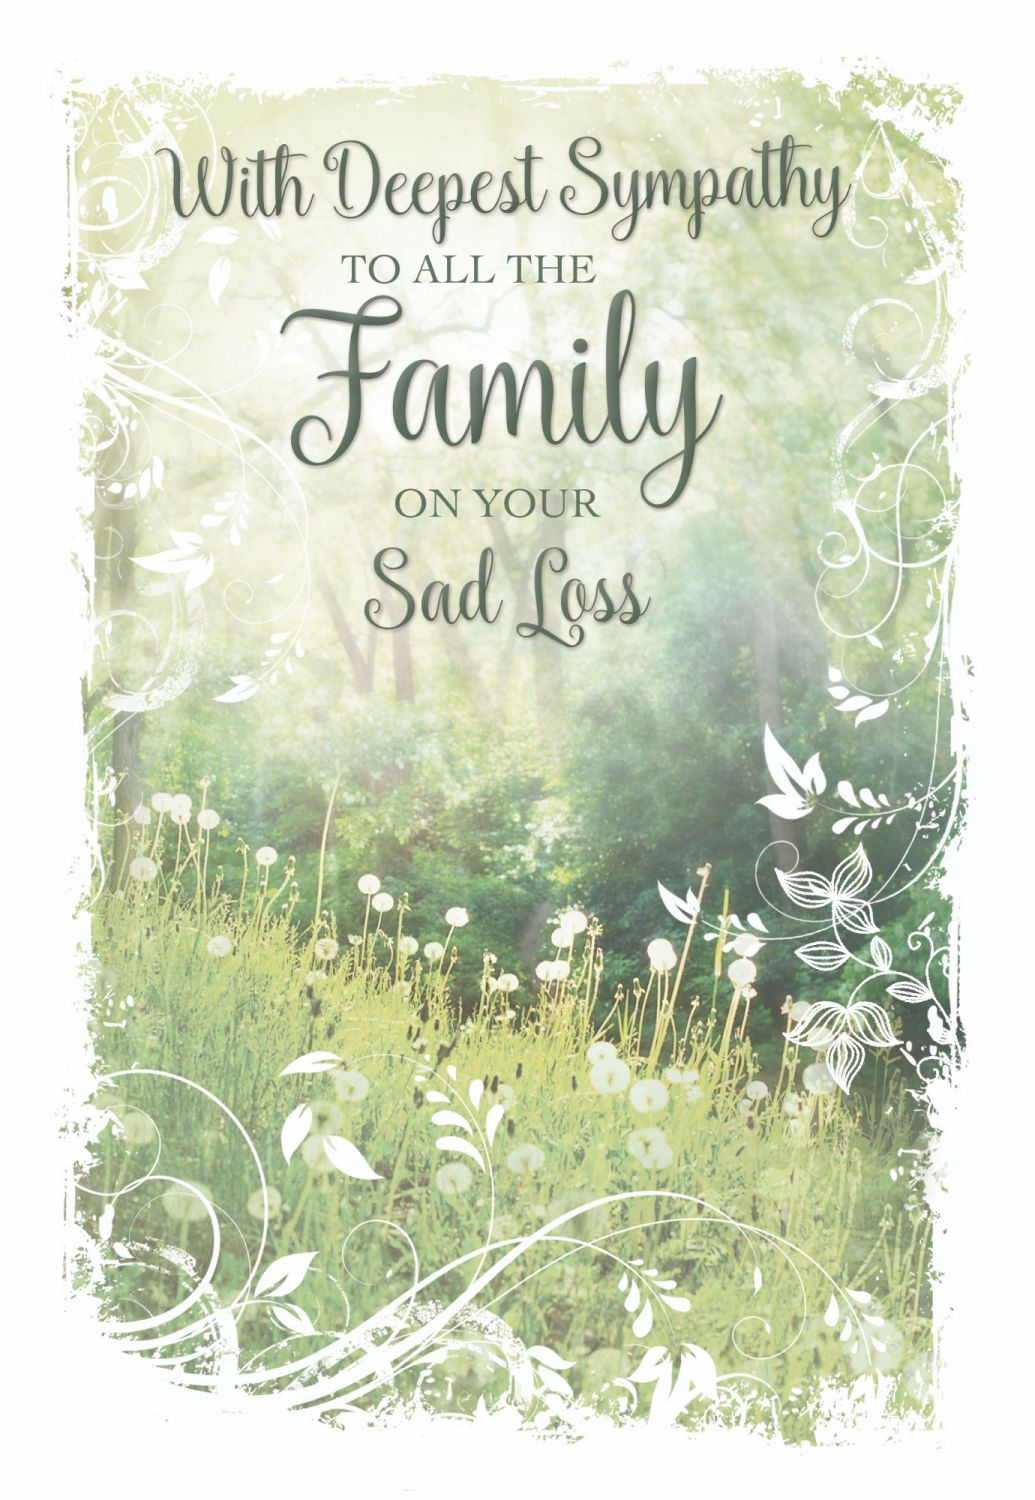 Family Bereavement Cards - To ALL The FAMILY - CONDOLENCE Cards - Sympathy